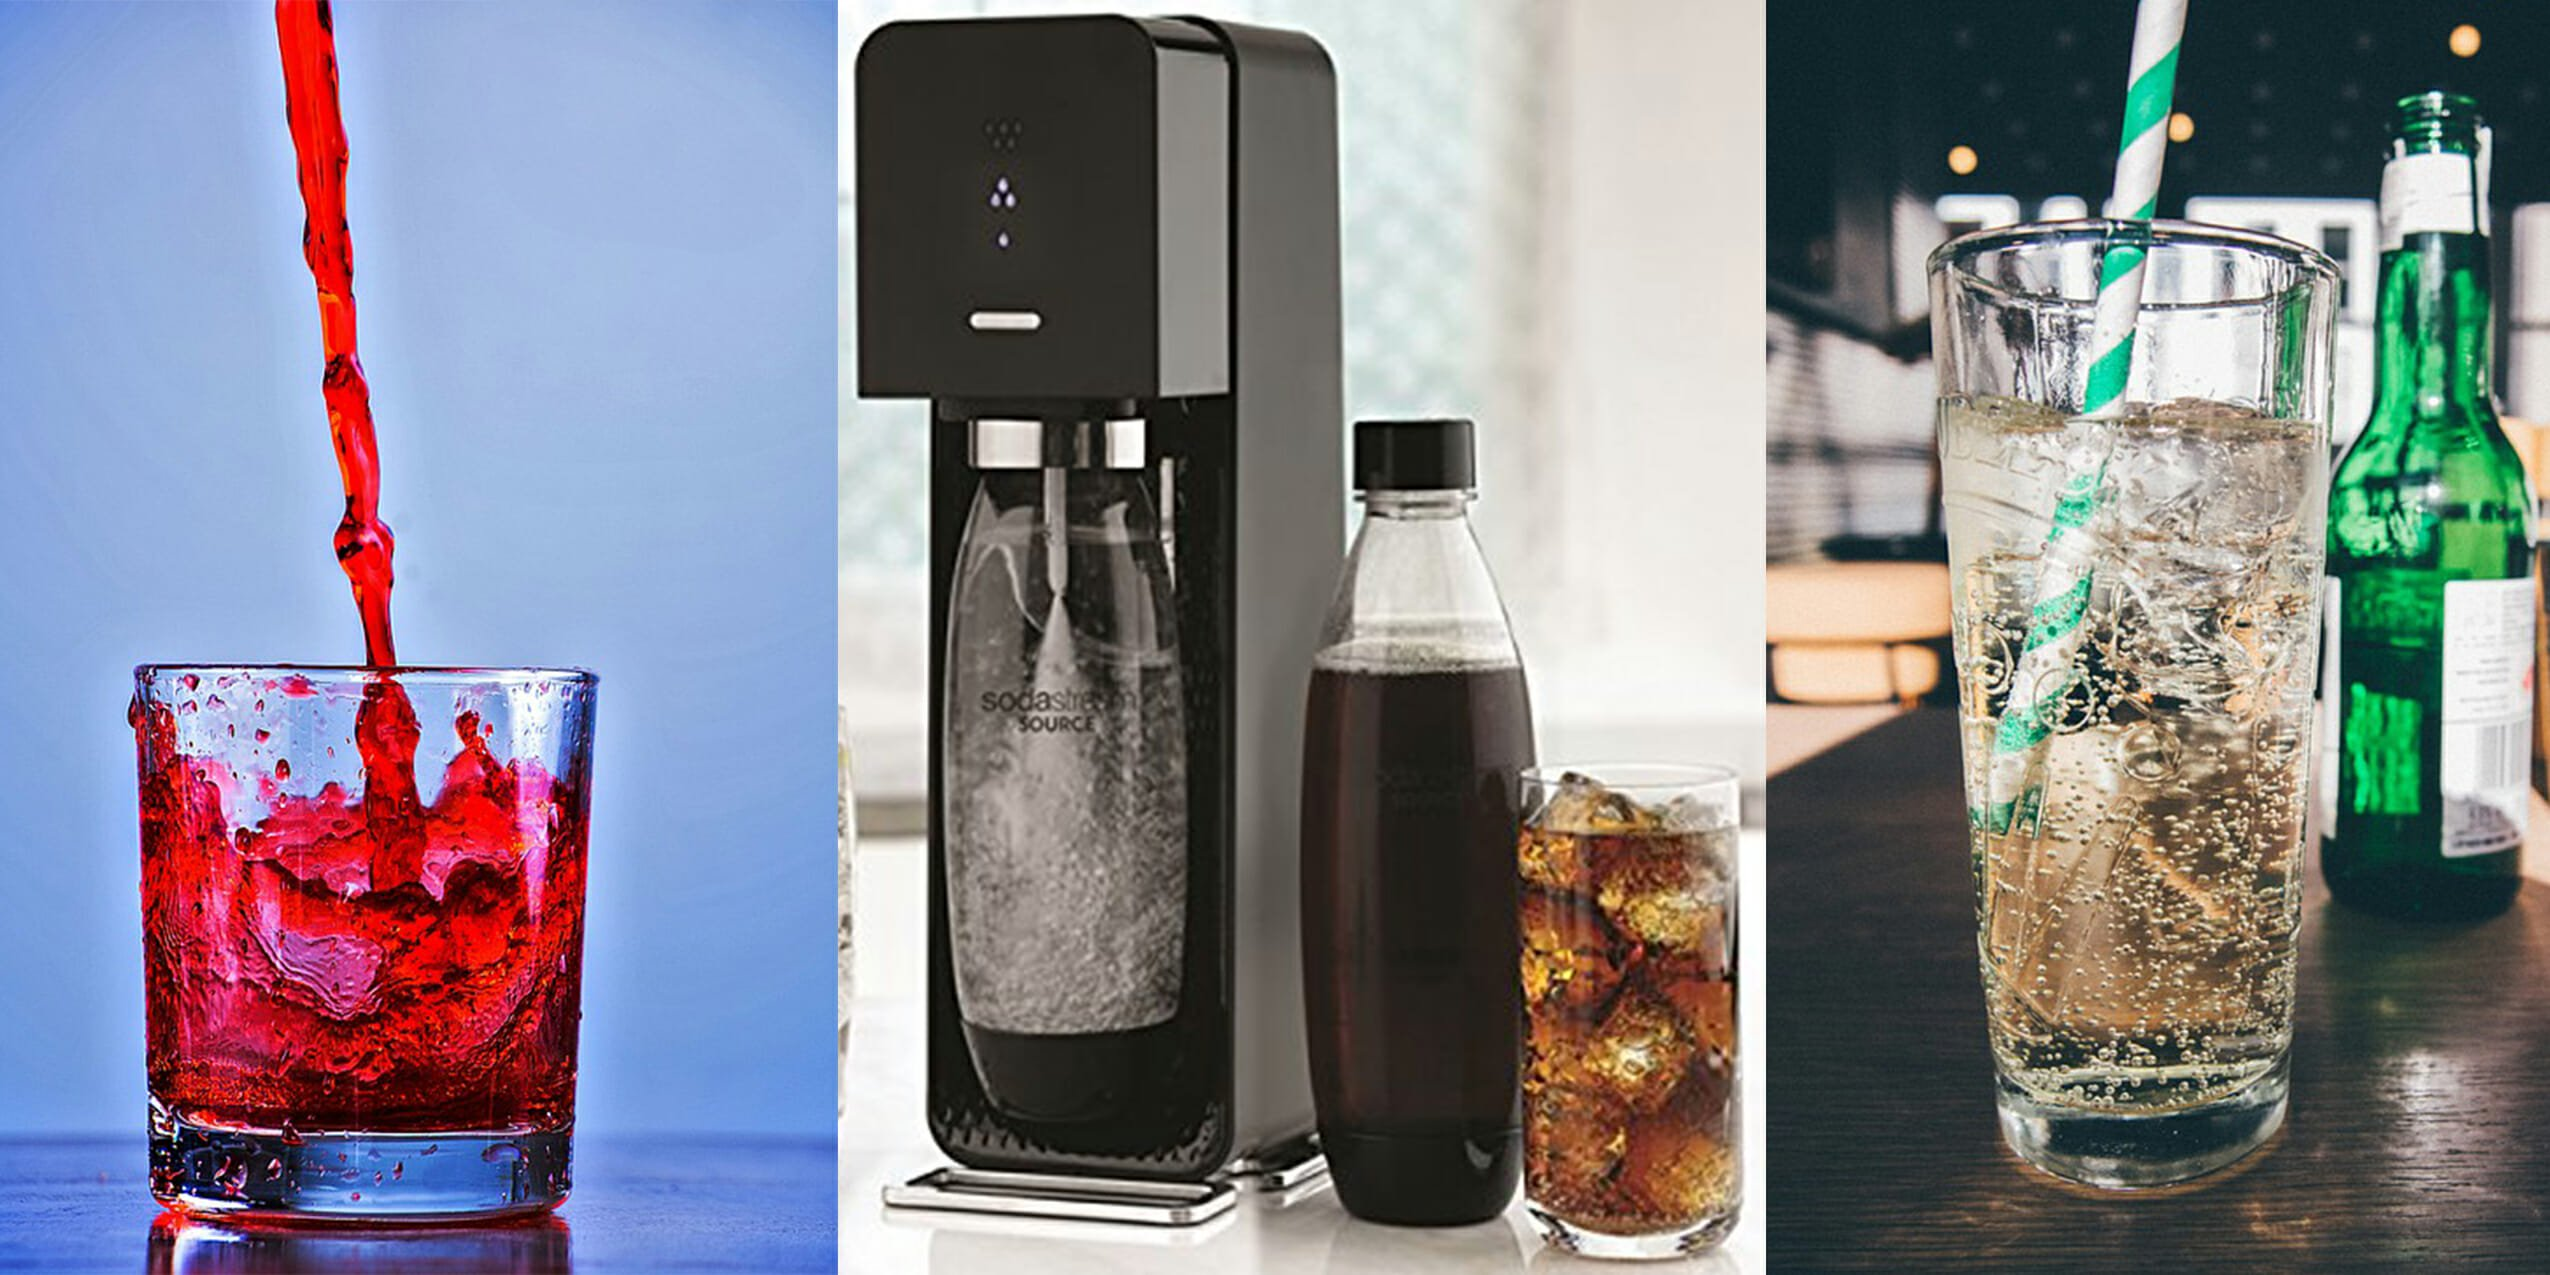 How To Use Sodastream To Make Every Drink Better photo